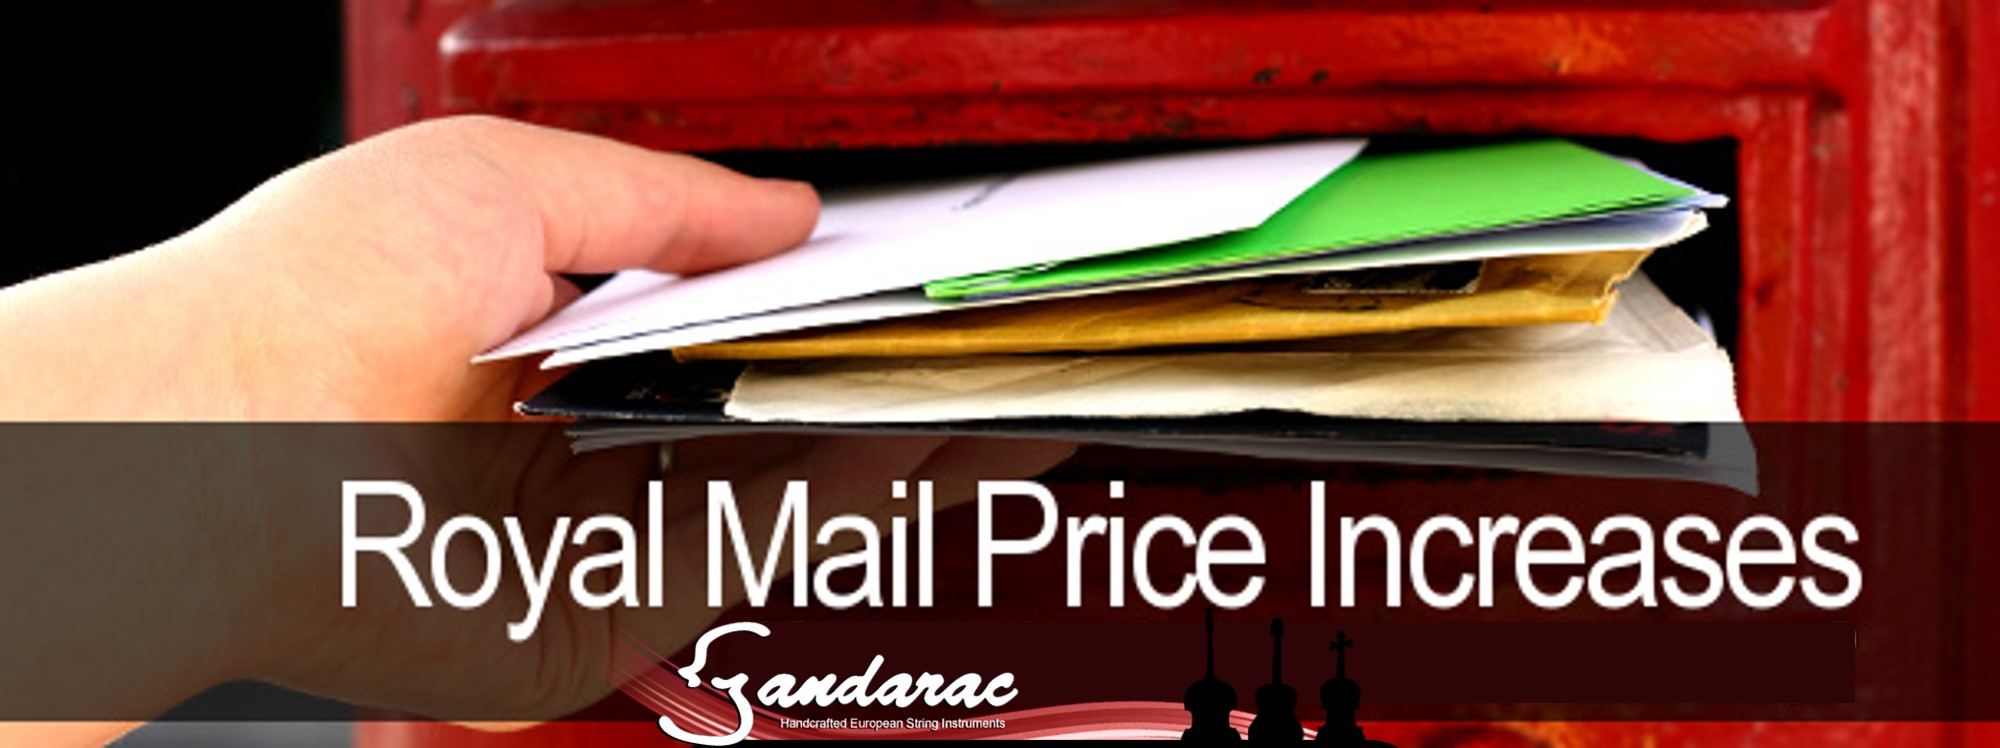 26 - royal mail prices